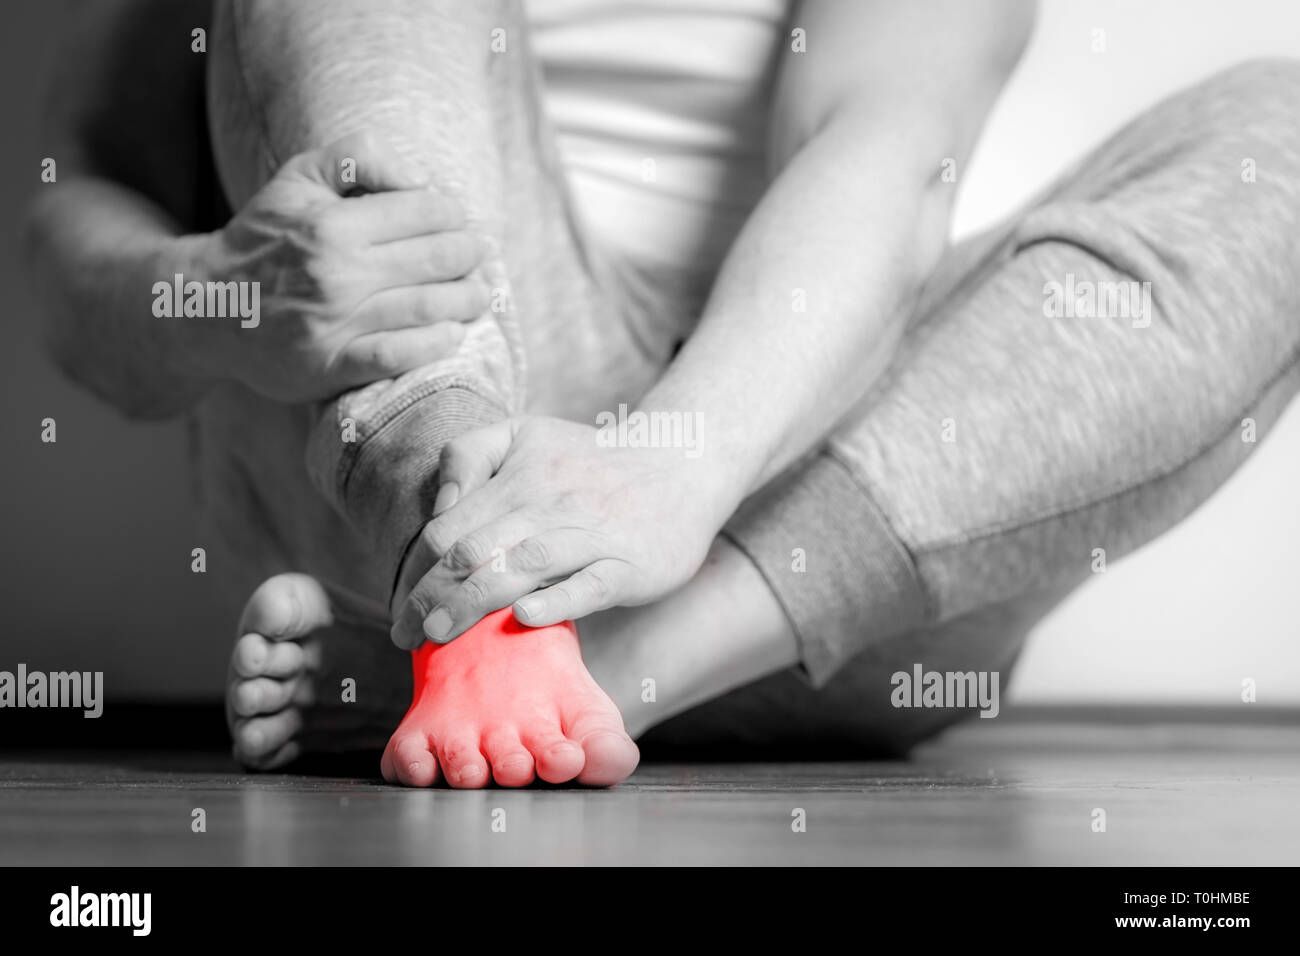 Causian man holds hands to his painful feet pain in foot black and white photography red color is area of pain